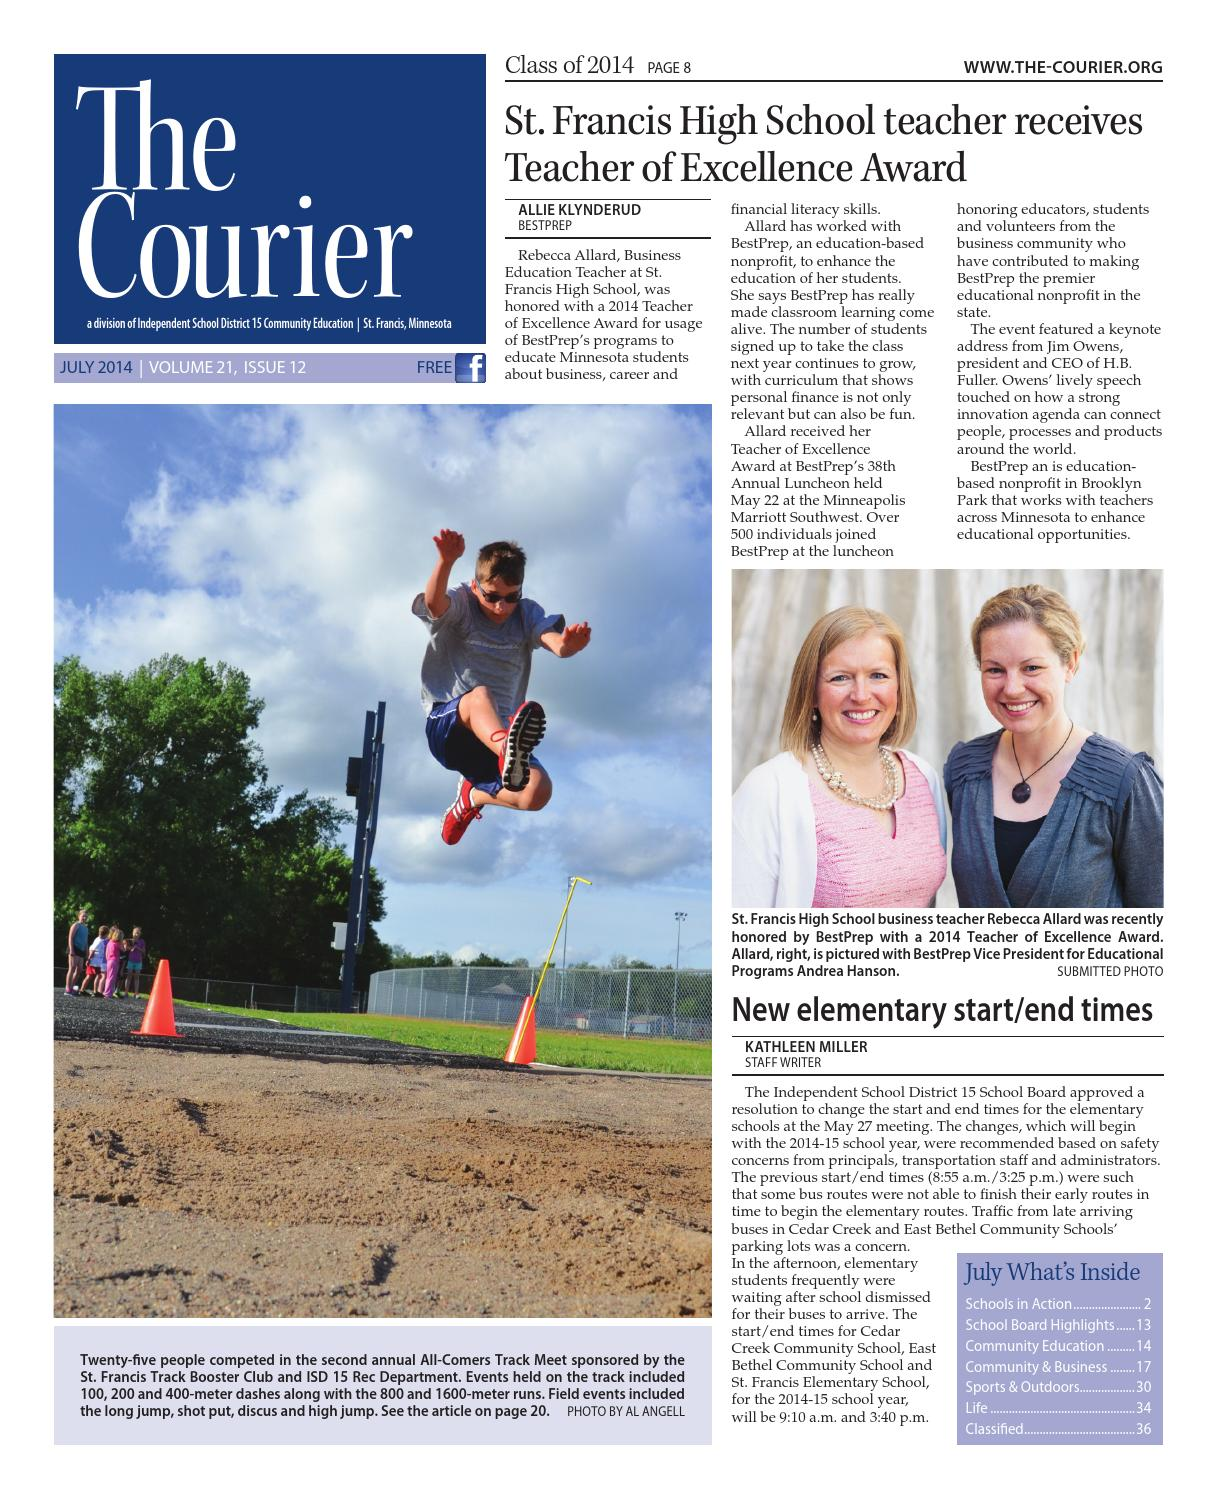 Amanda Klebs The Courier - July 2014 by Independent School District 15, St. Francis - issuu